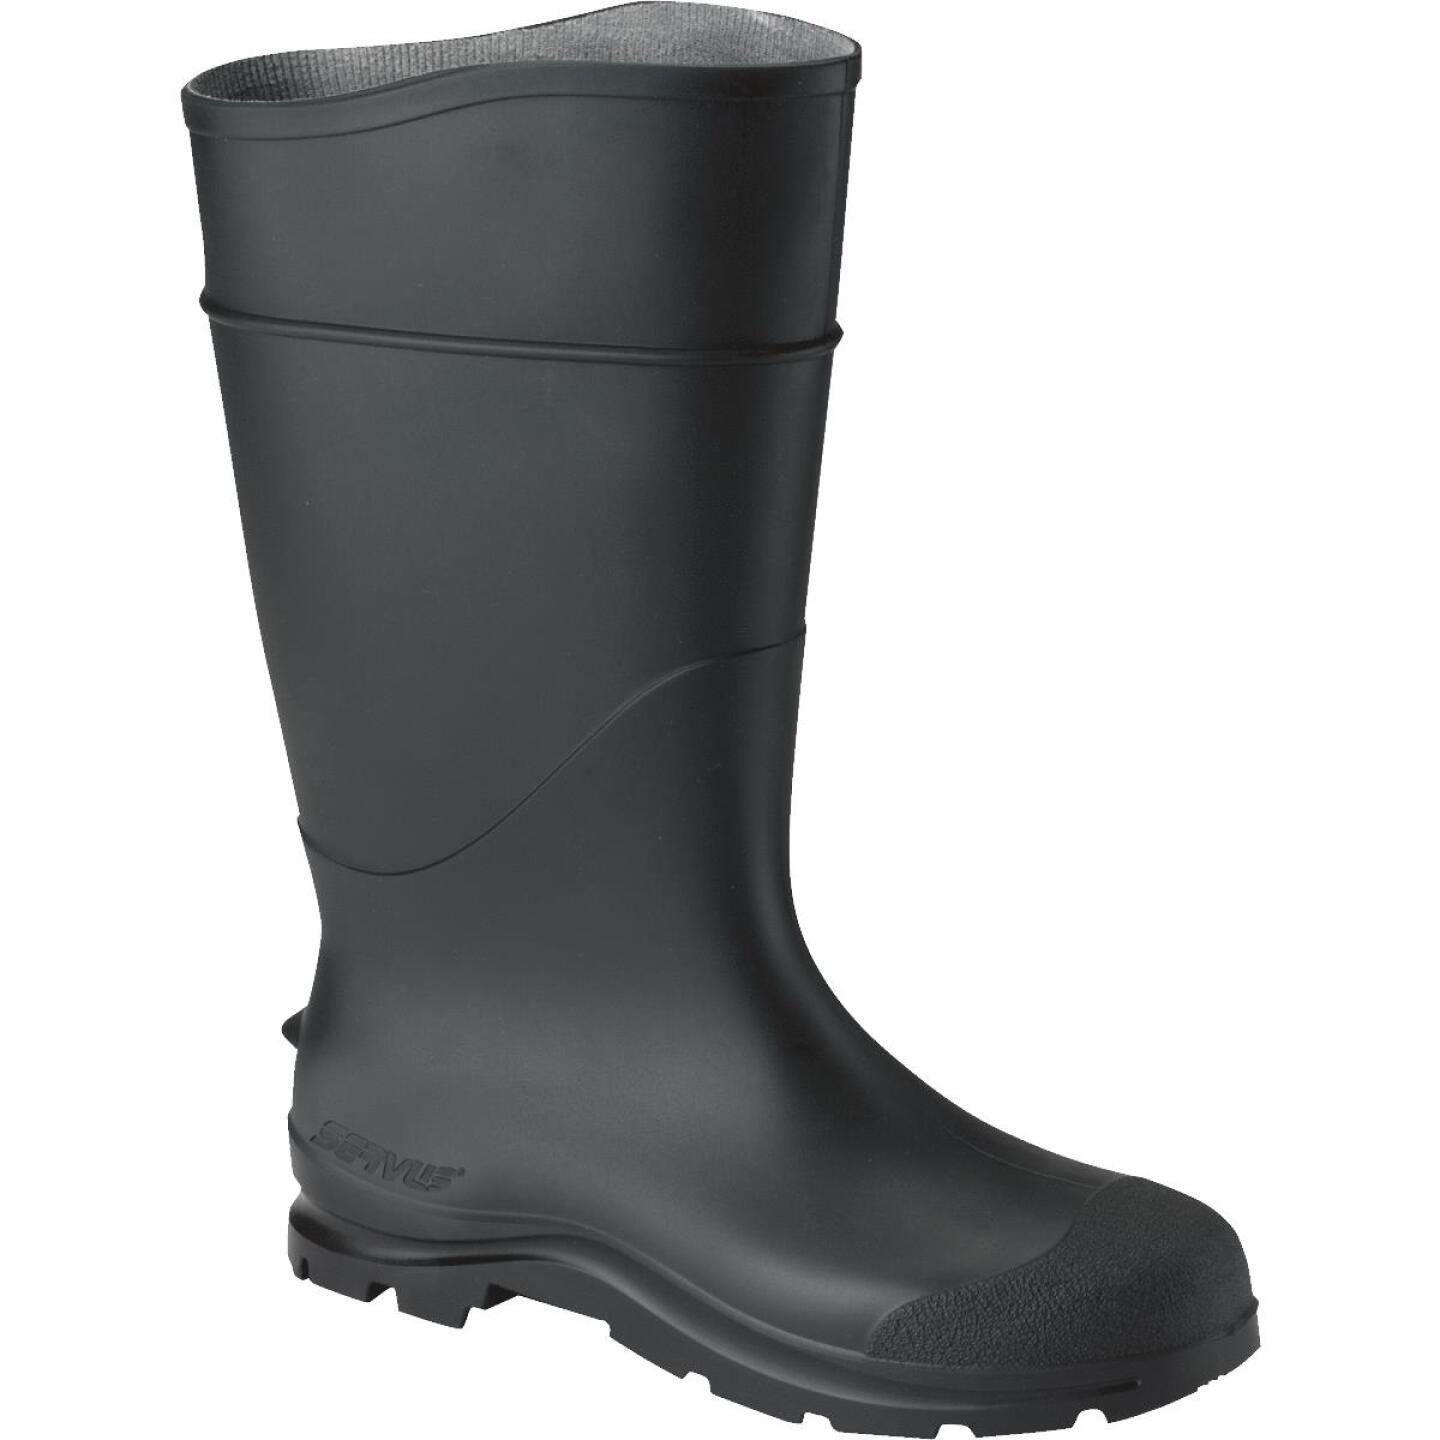 Honeywell Servus Men's Size 10 Black Plain Toe PVC Rubber Boot Image 1